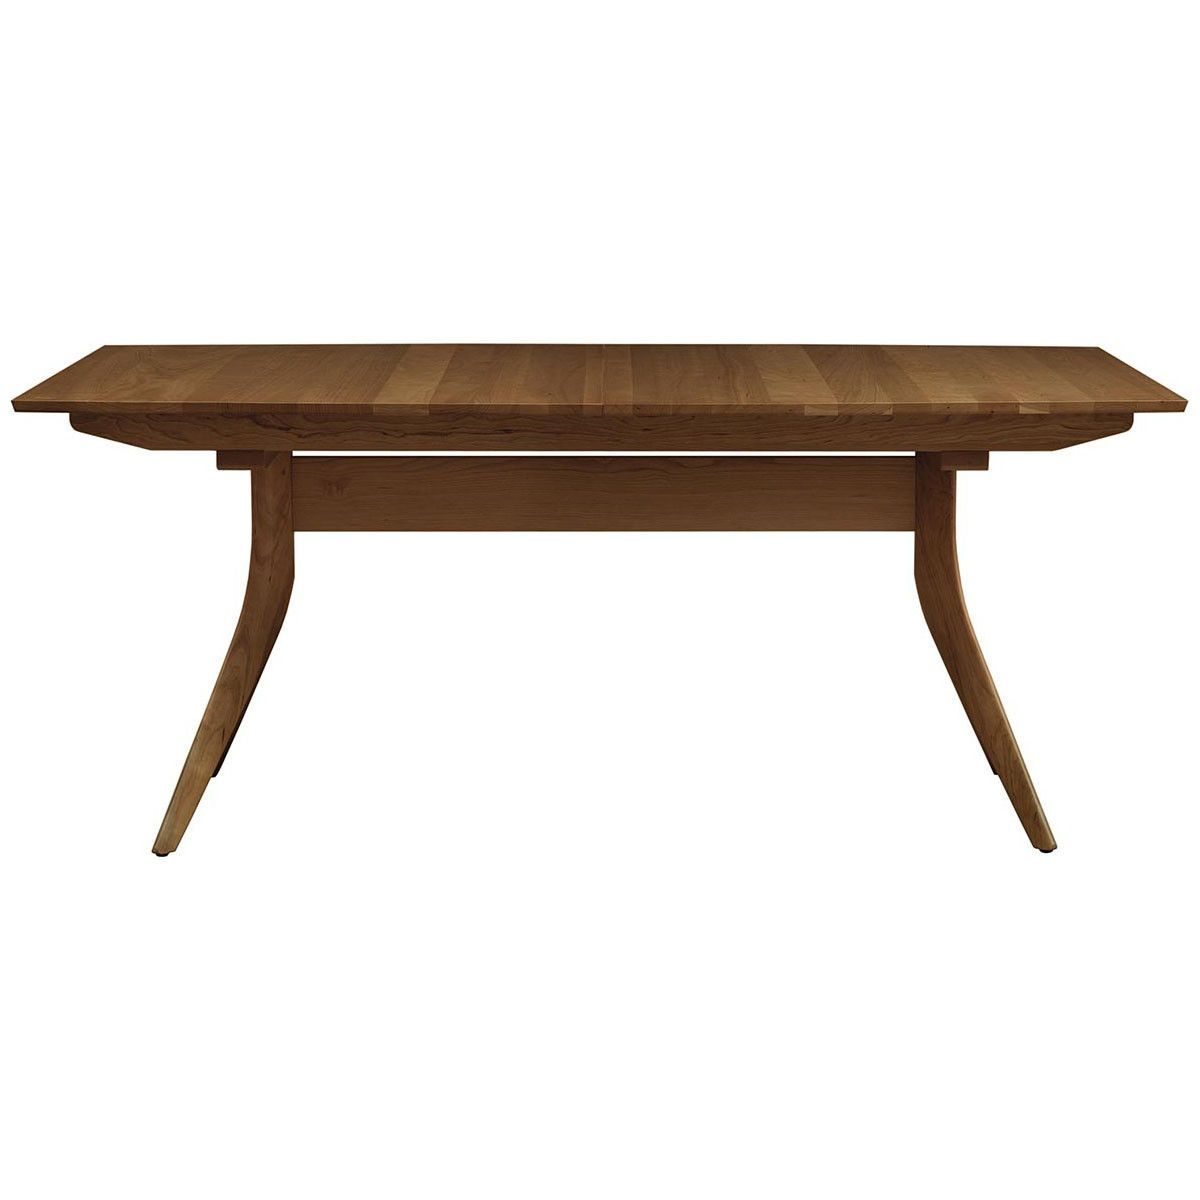 """Copeland Furniture Catalina 40"""""""" x 66"""""""" Trestle Extension Dining Tables 6-CAL-16-03"""